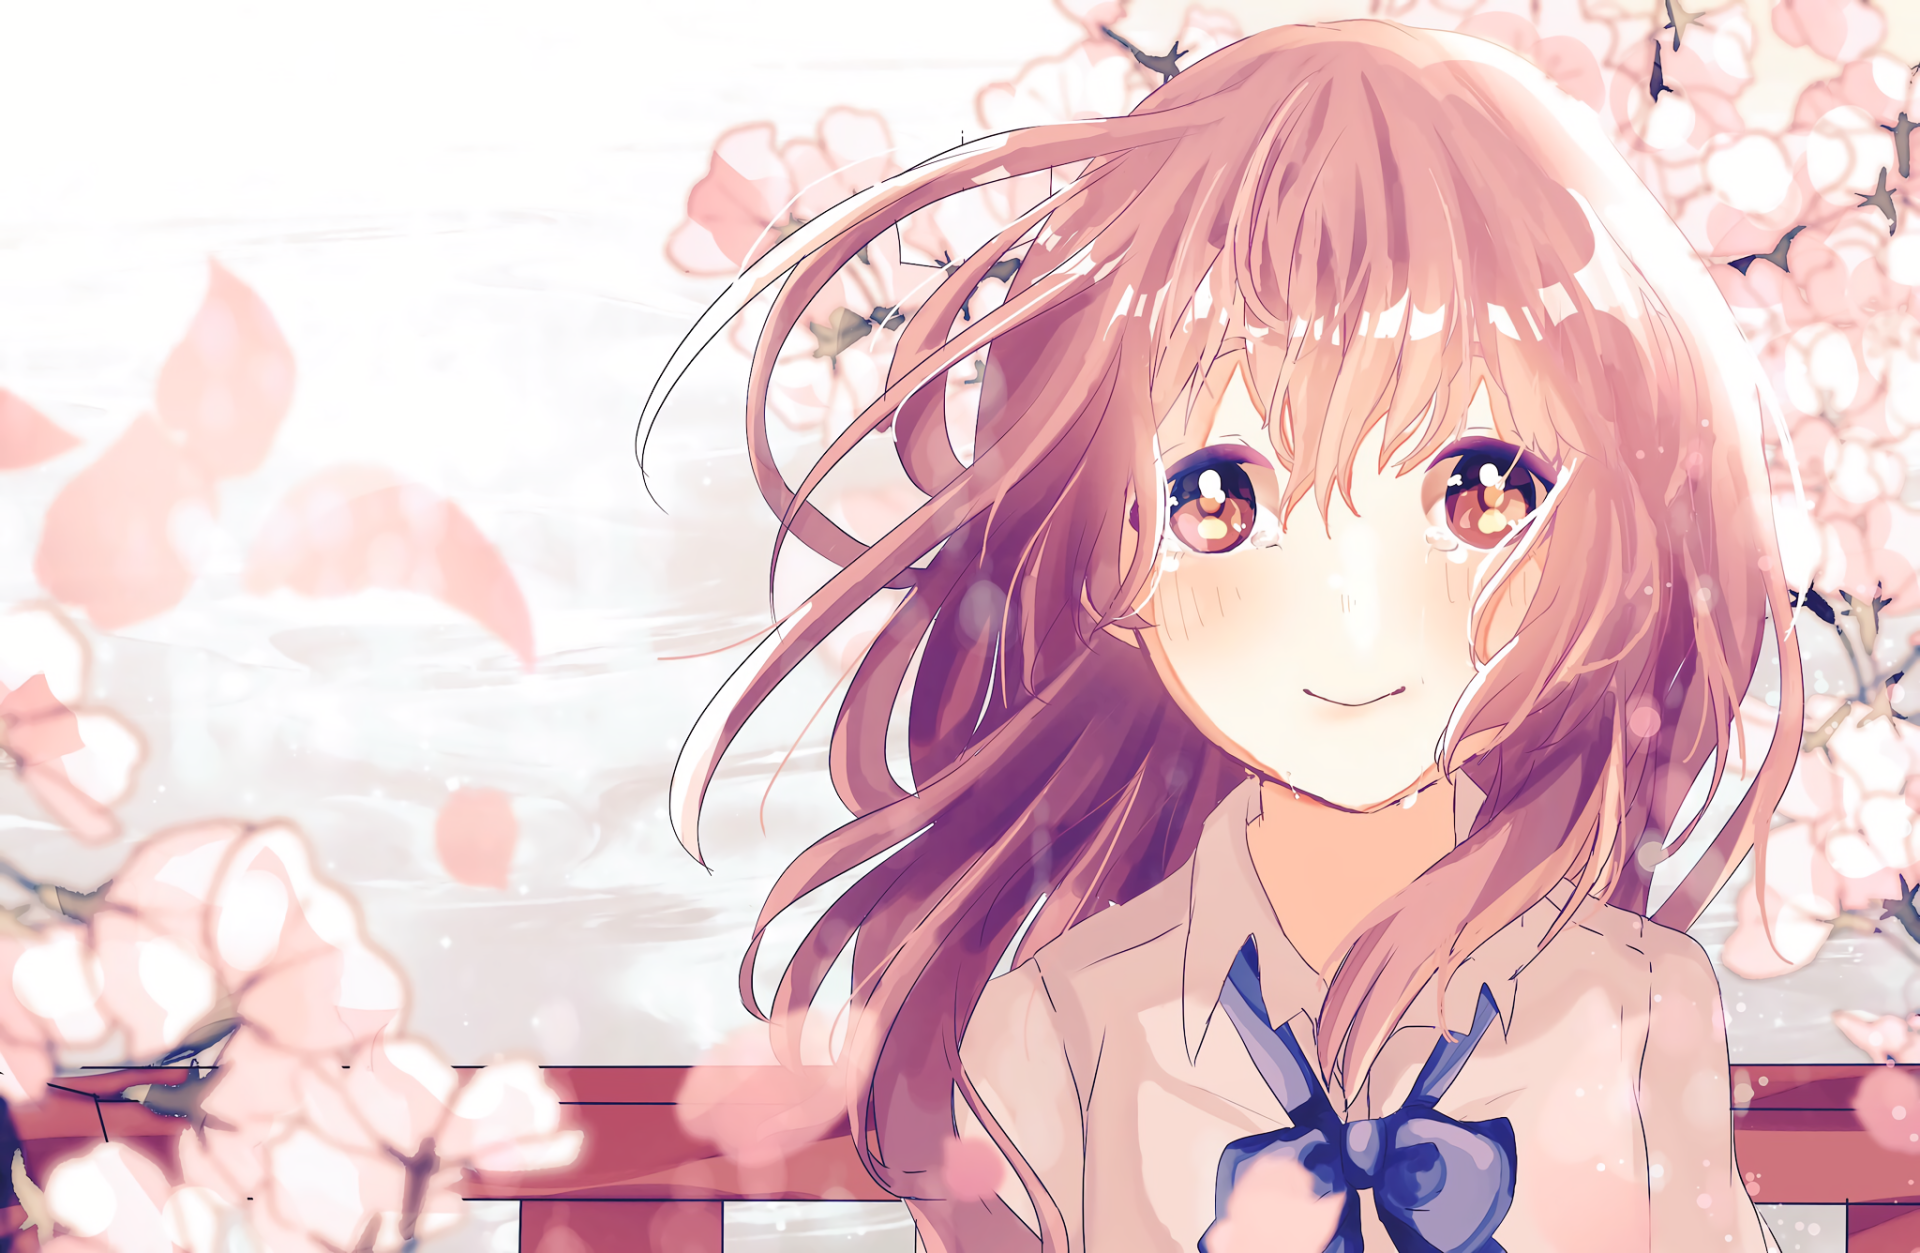 Anime Koe No Katachi Wallpaper Menina anime, Anime